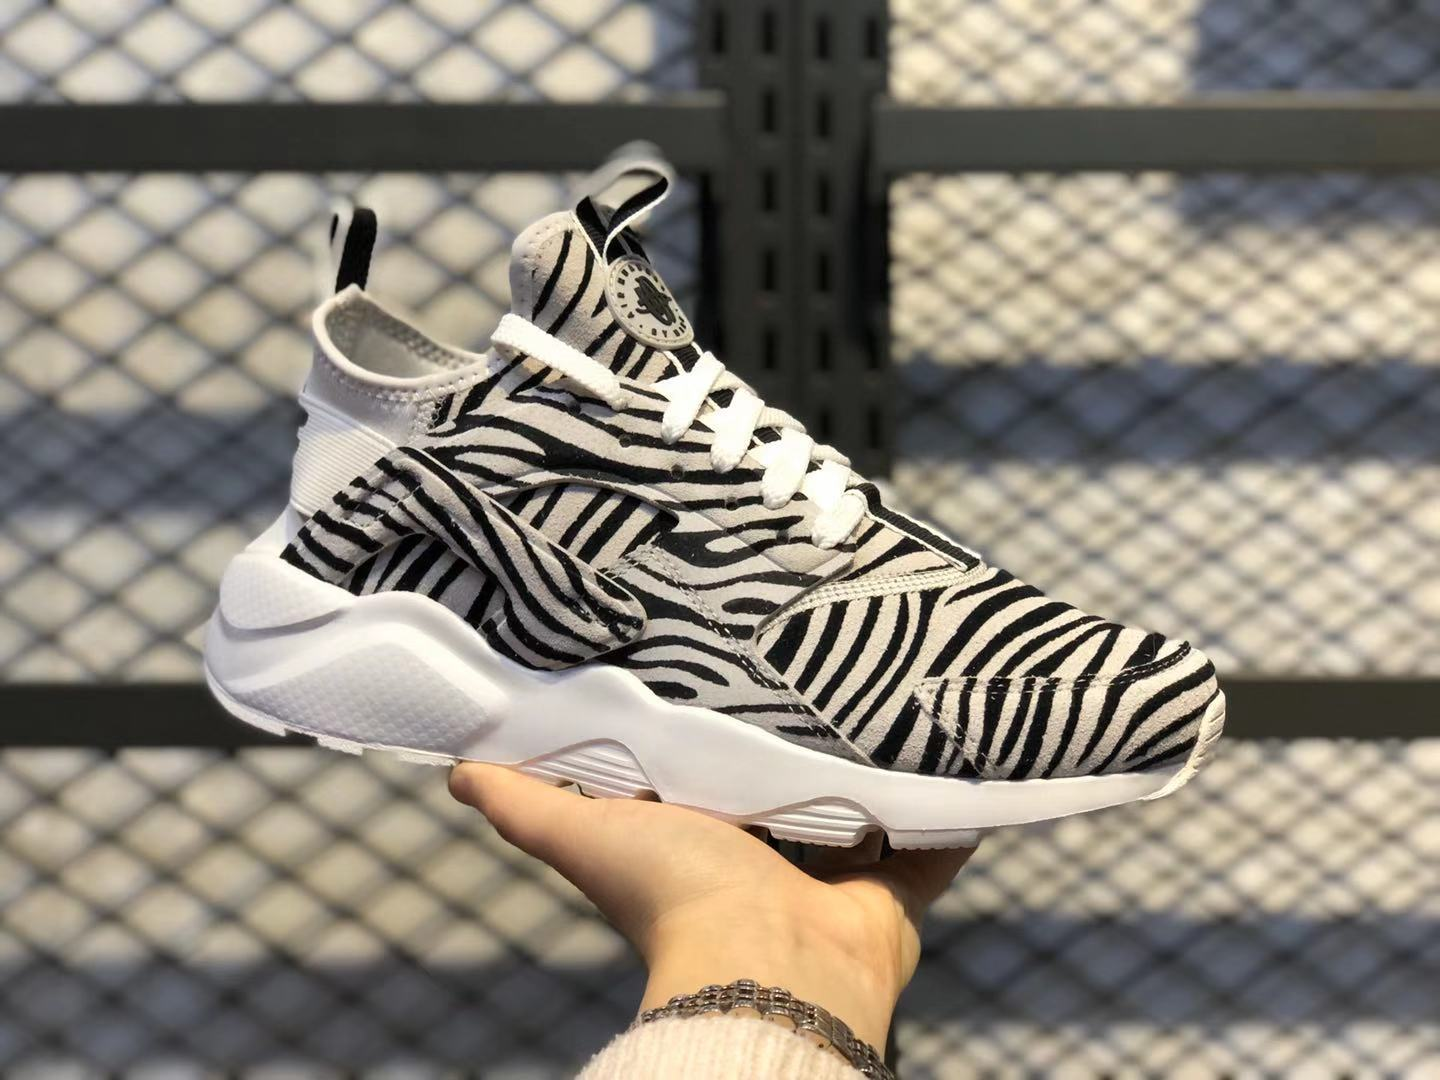 Nike Air Huarache Ultra Zebra Print White Black In Stock 829669-553